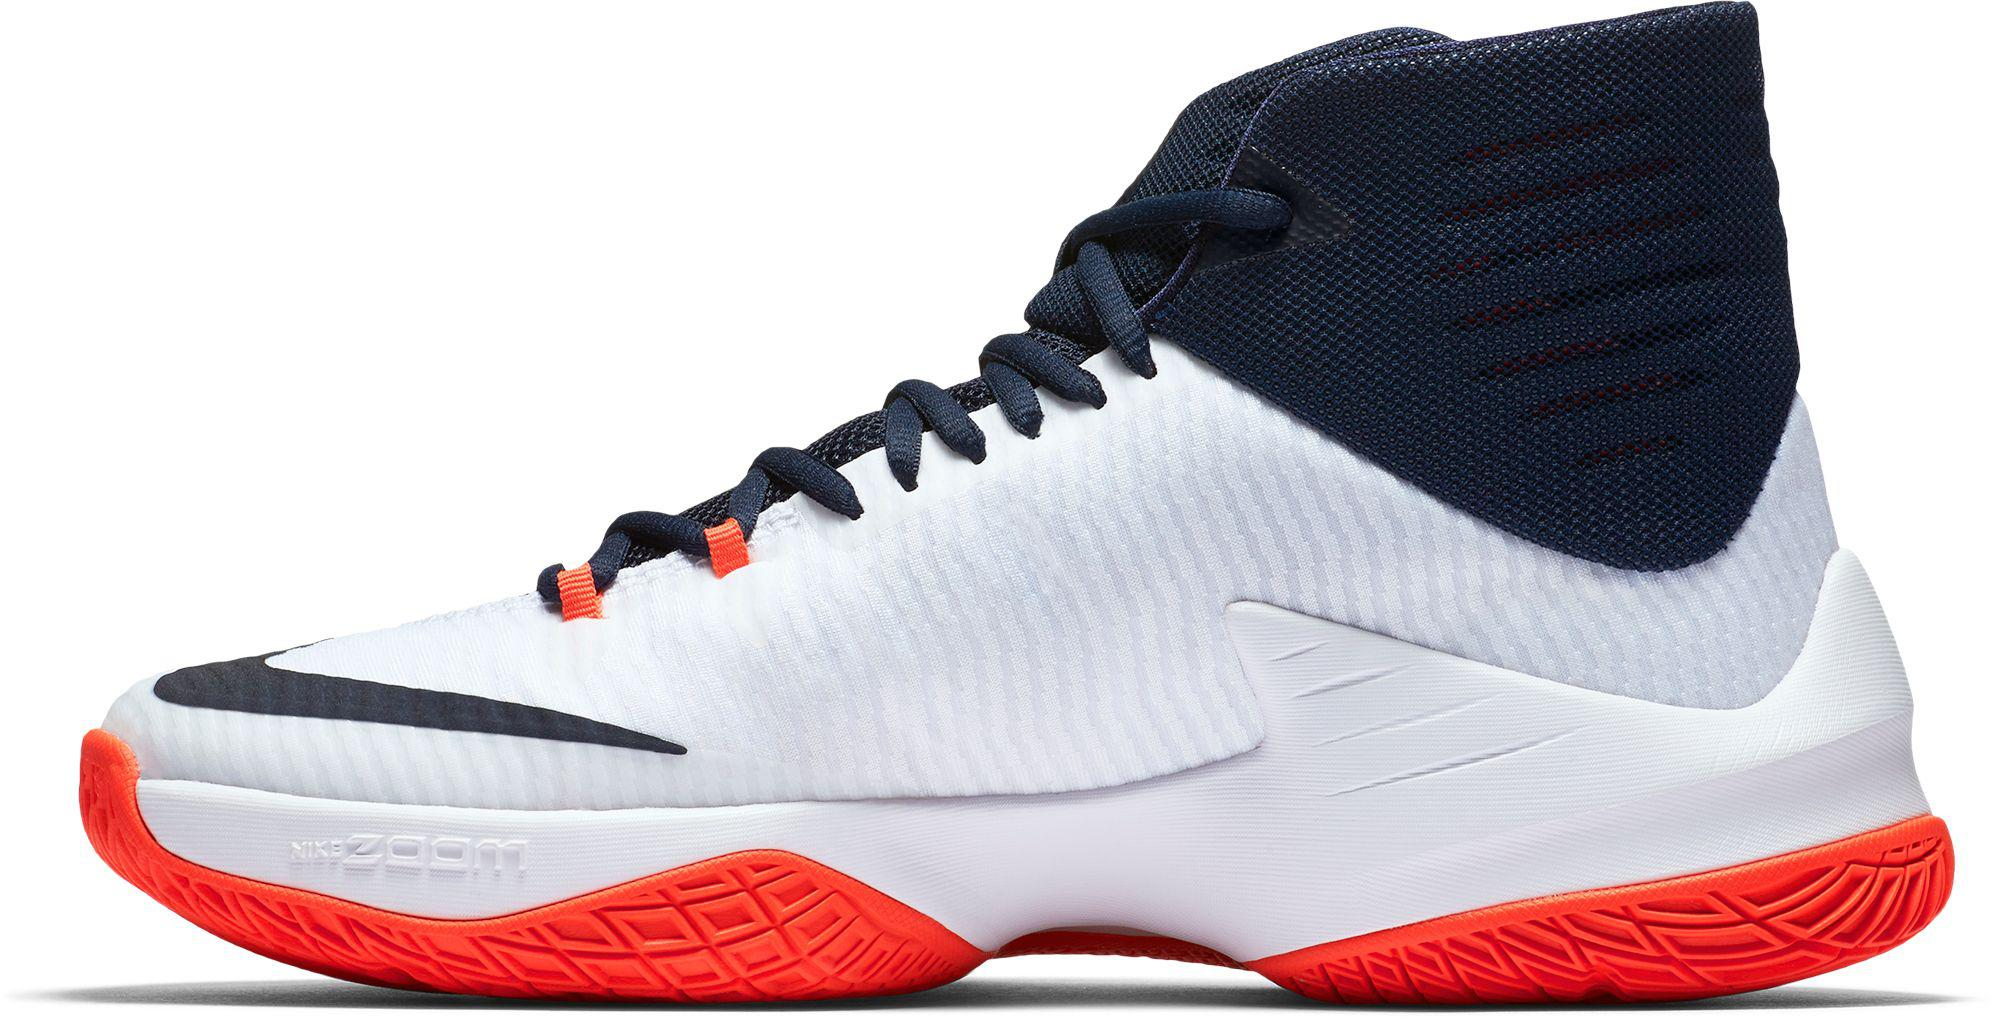 684383fc4f25e nike-WhiteObsidian-Zoom-Clear-Out-Basketball-Shoes.jpeg